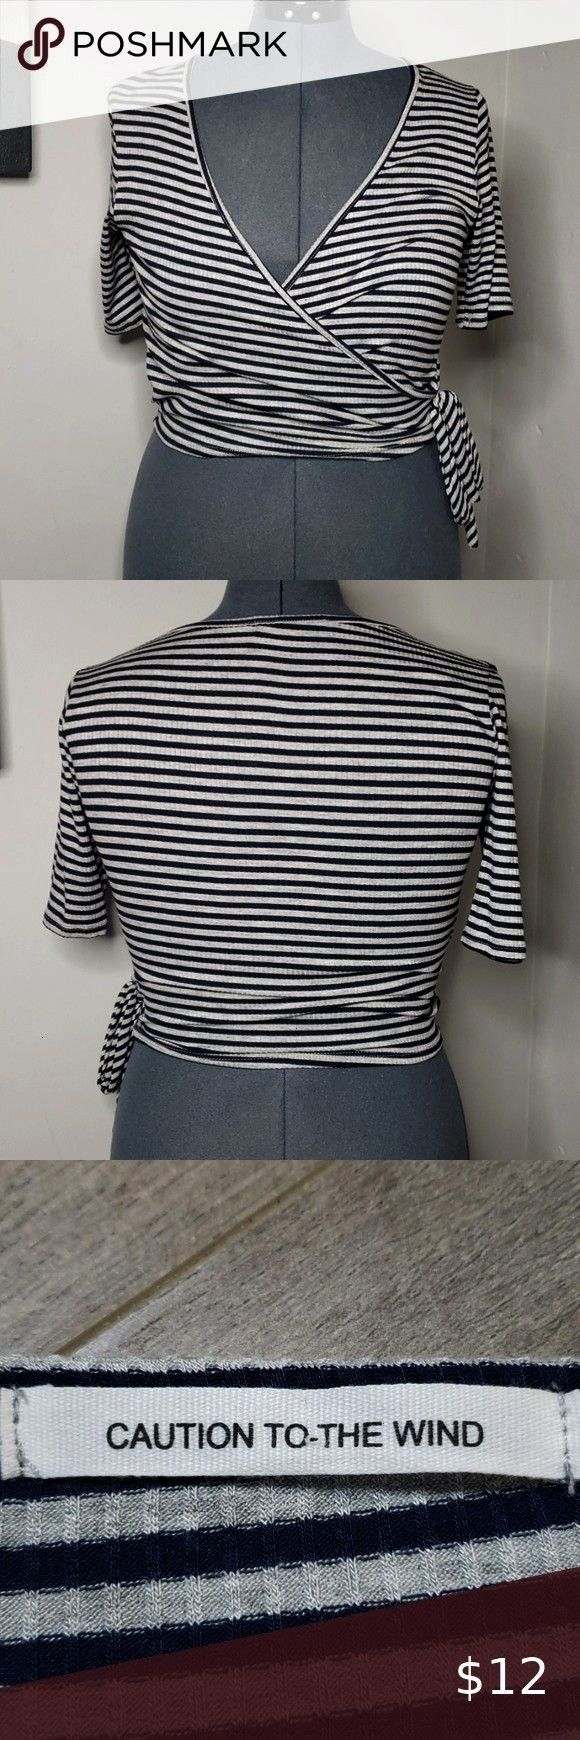 added this listing on Poshmark Caution to the Wind Crop Top  Large To The WindI just added this listing on Poshmark Caution to the Wind Crop Top  Large To The Wind Childr...